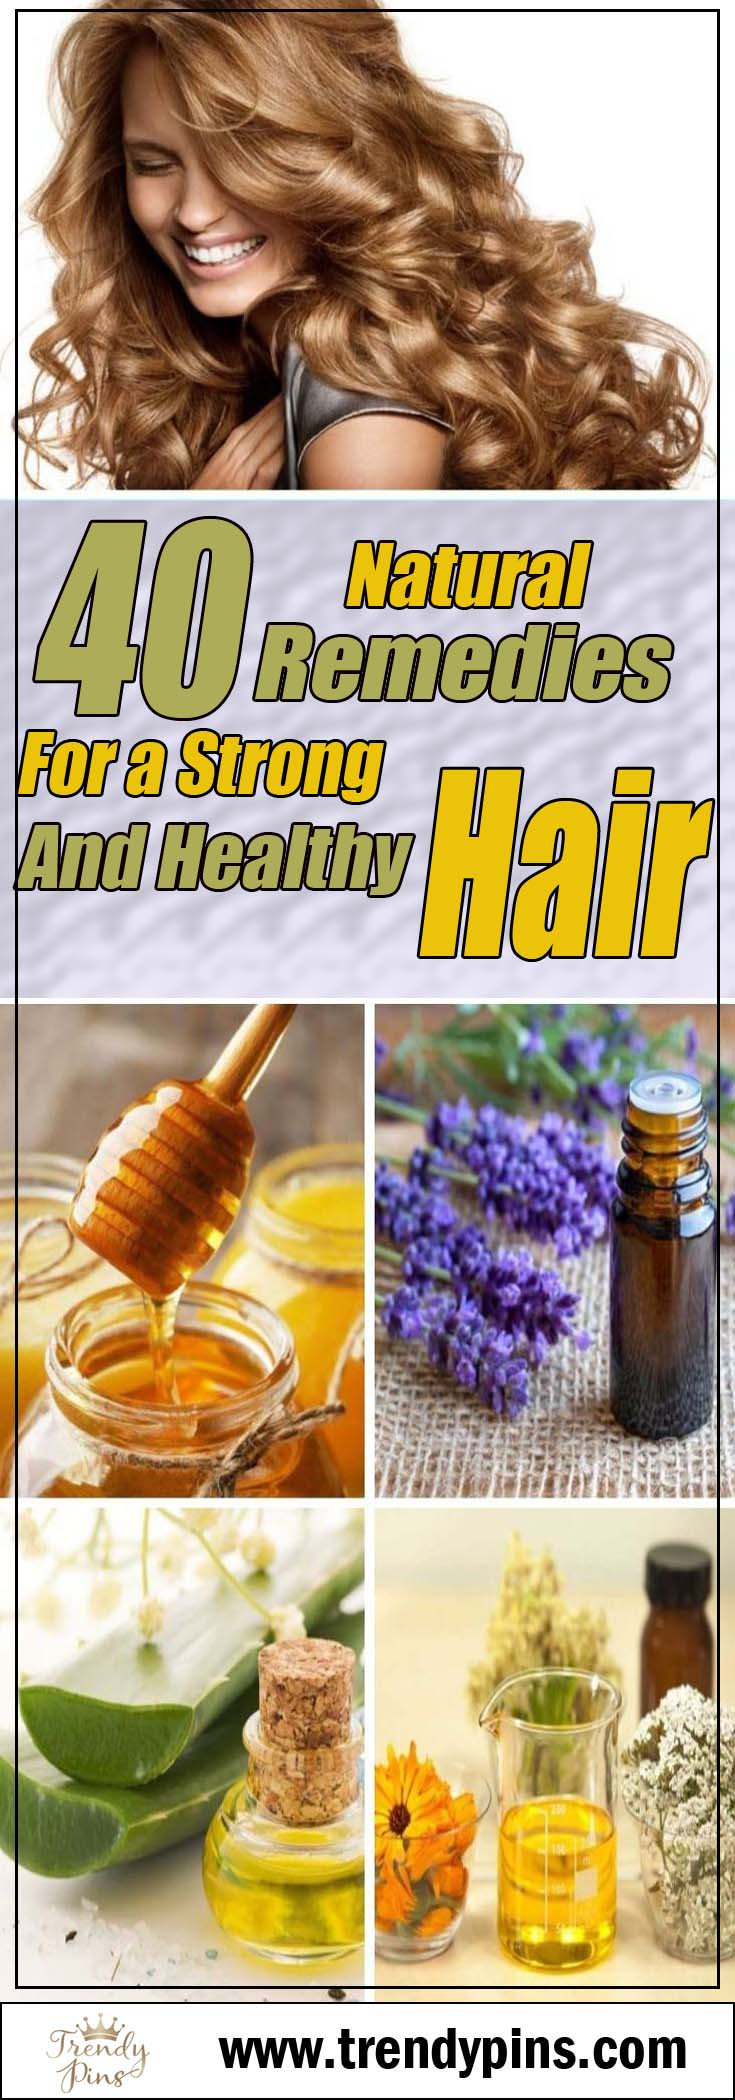 40 naturally remedies for a strong and healthy hair